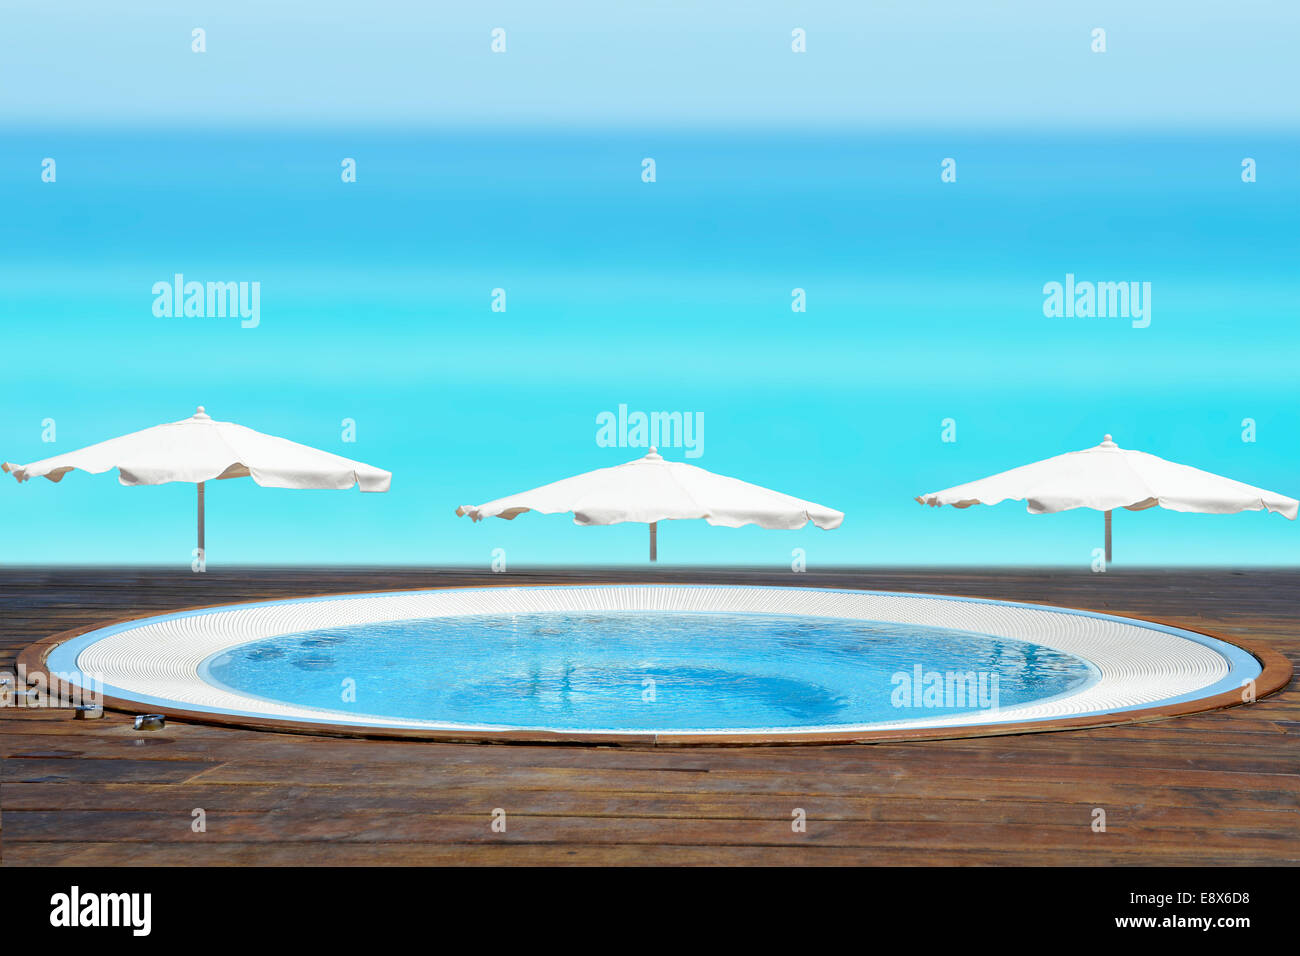 Empty jacuzzi facing a beach with a blue ocean - Stock Image